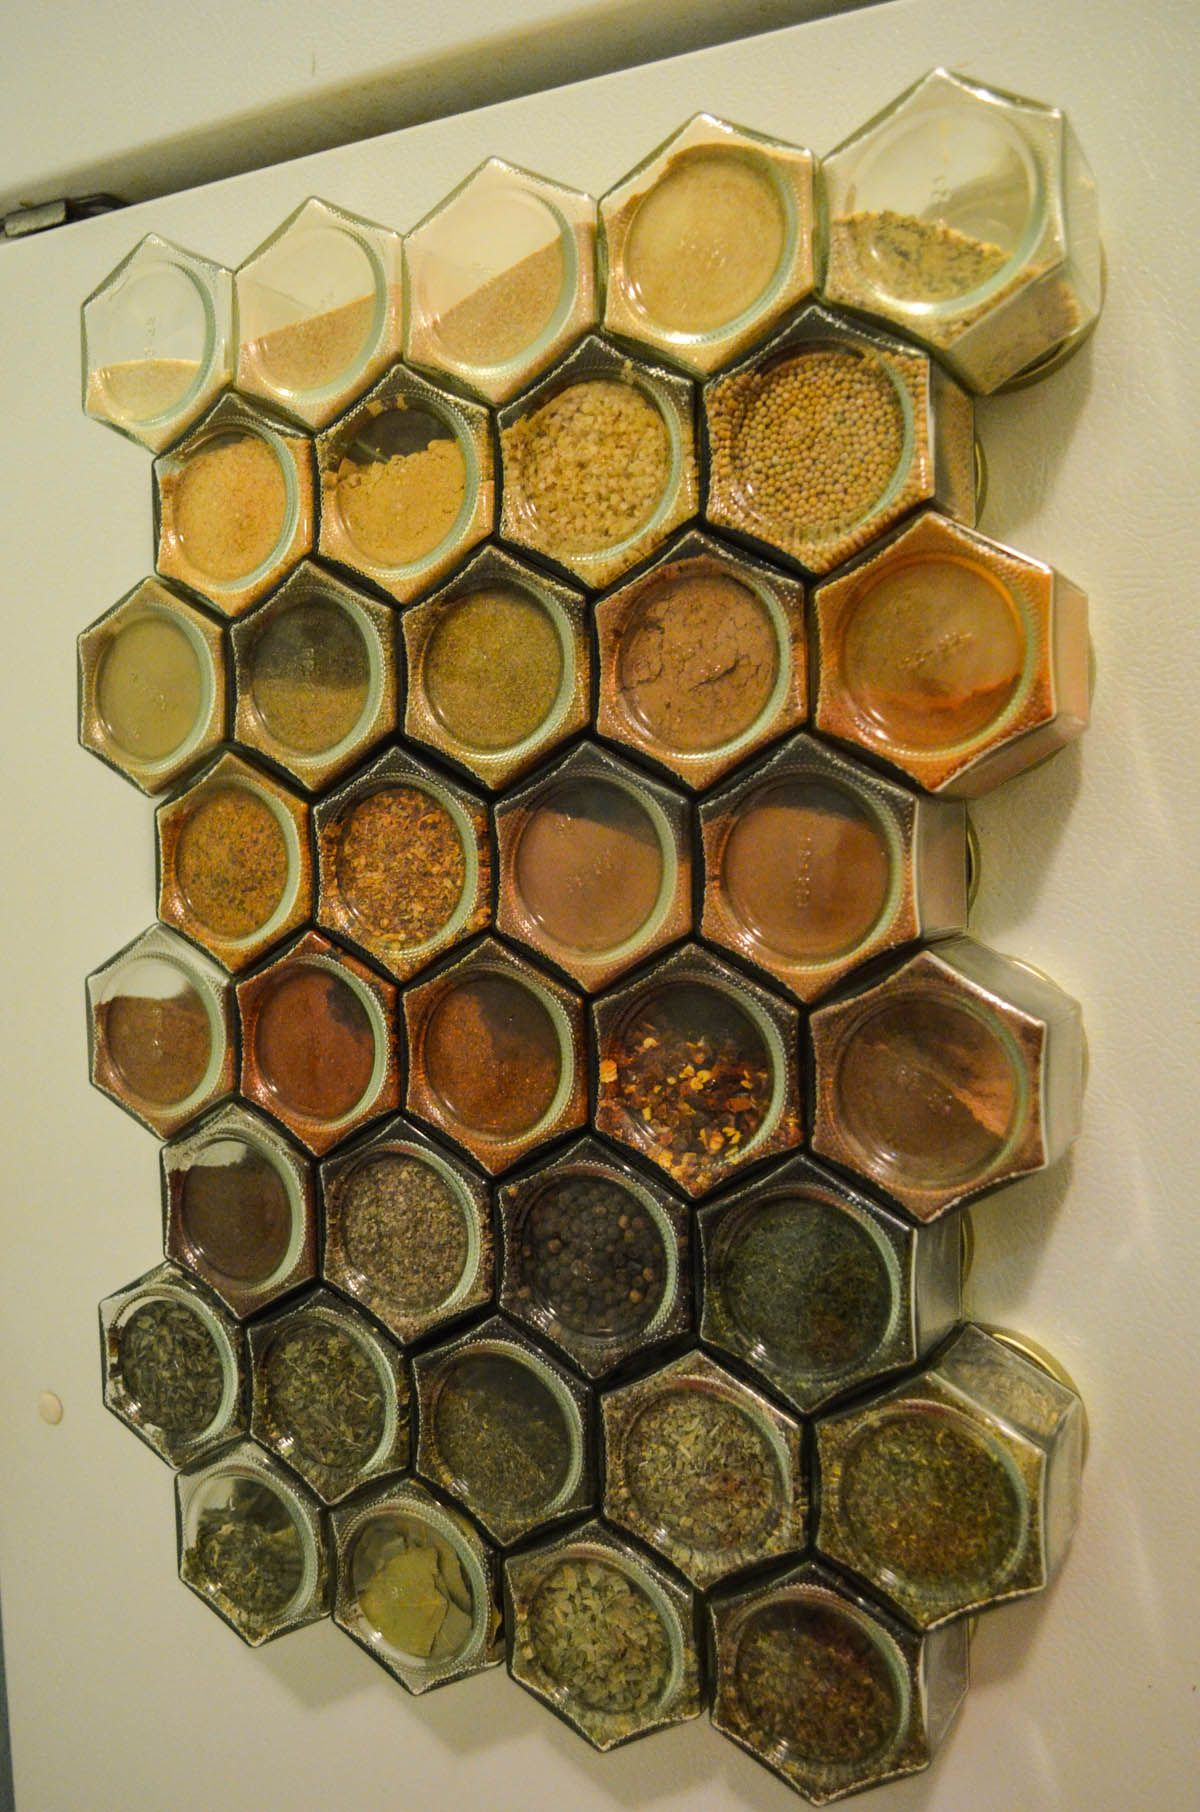 Organic Spice Rack Prepossessing Hanging Spice Rack Holds To Your Fridge Customer Photo Share Of The Review